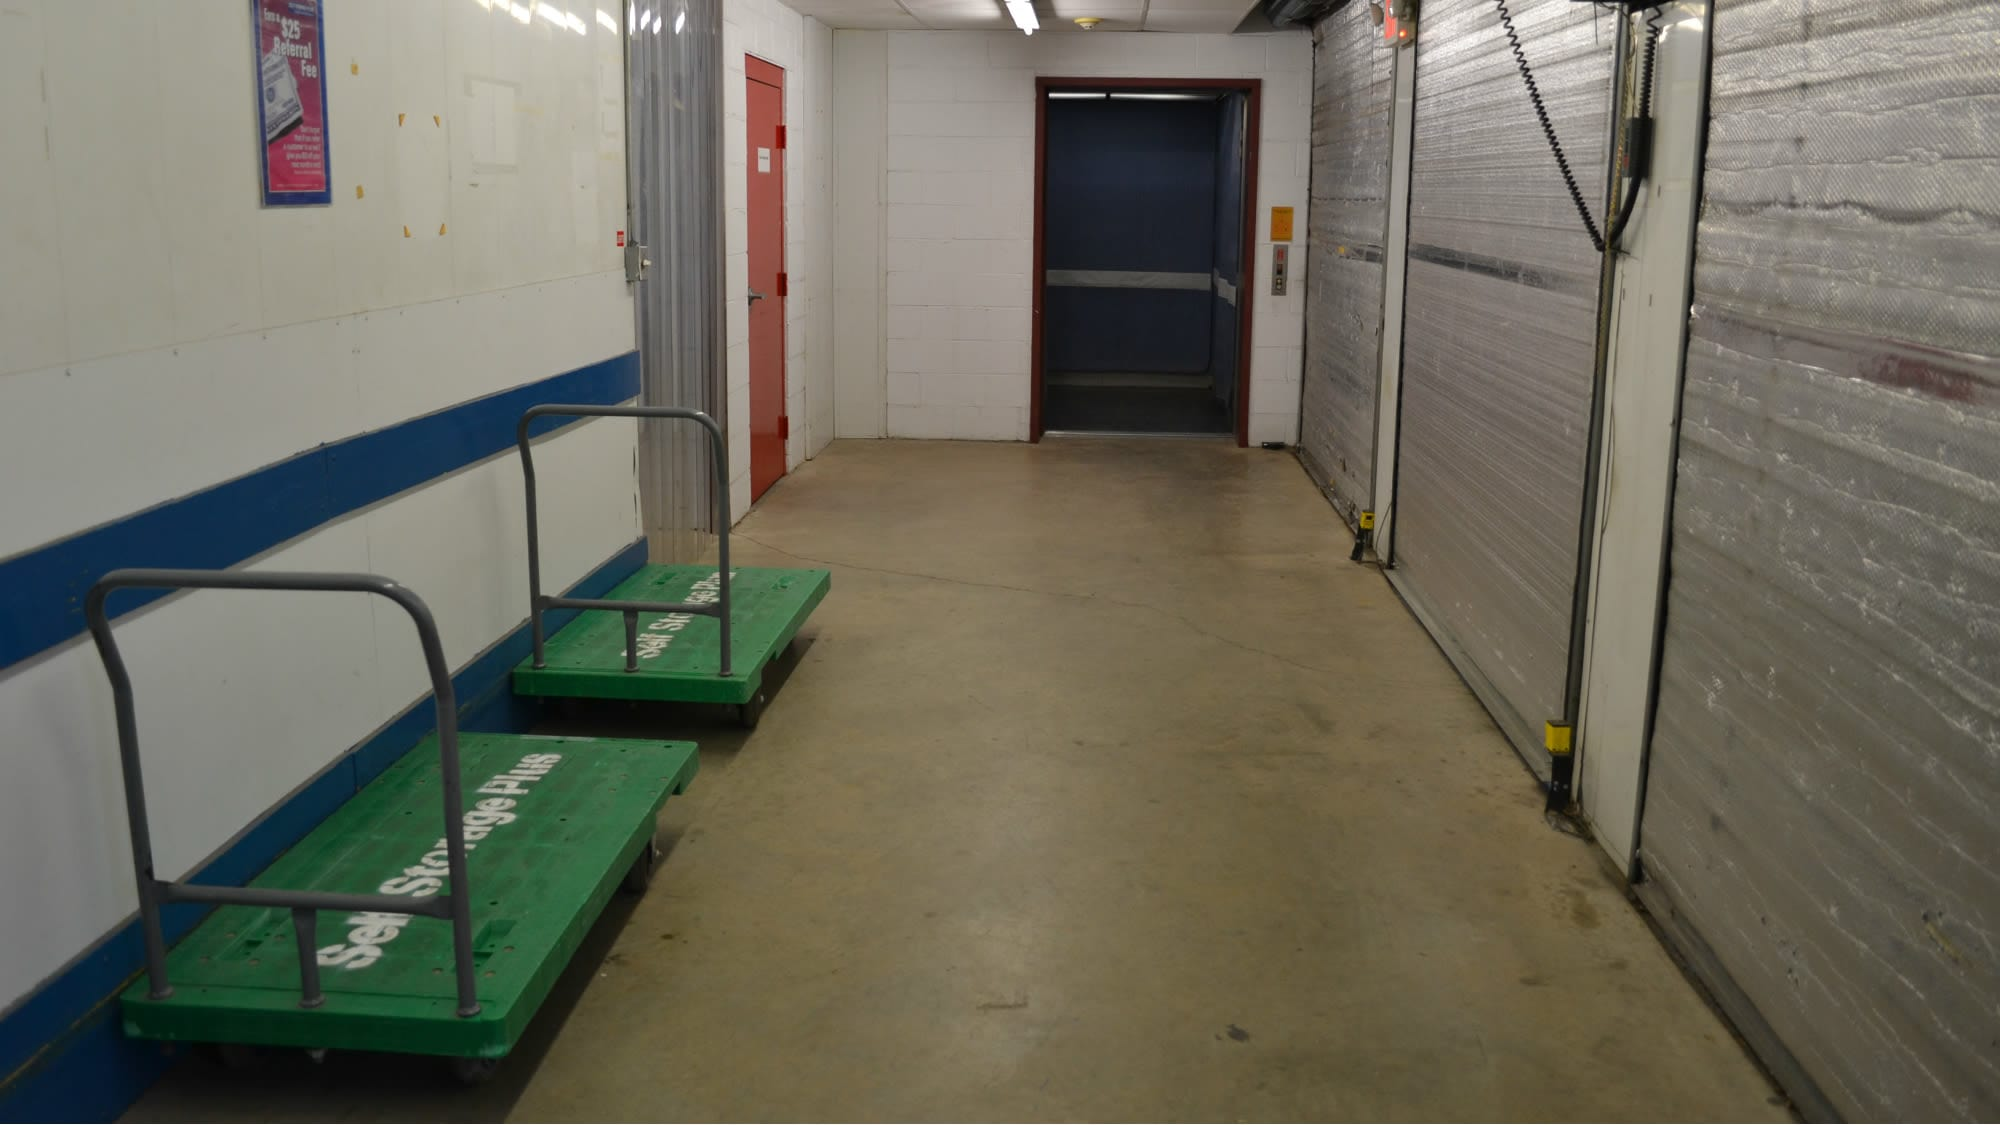 Carts available at Self Storage Plus in Baltimore, MD